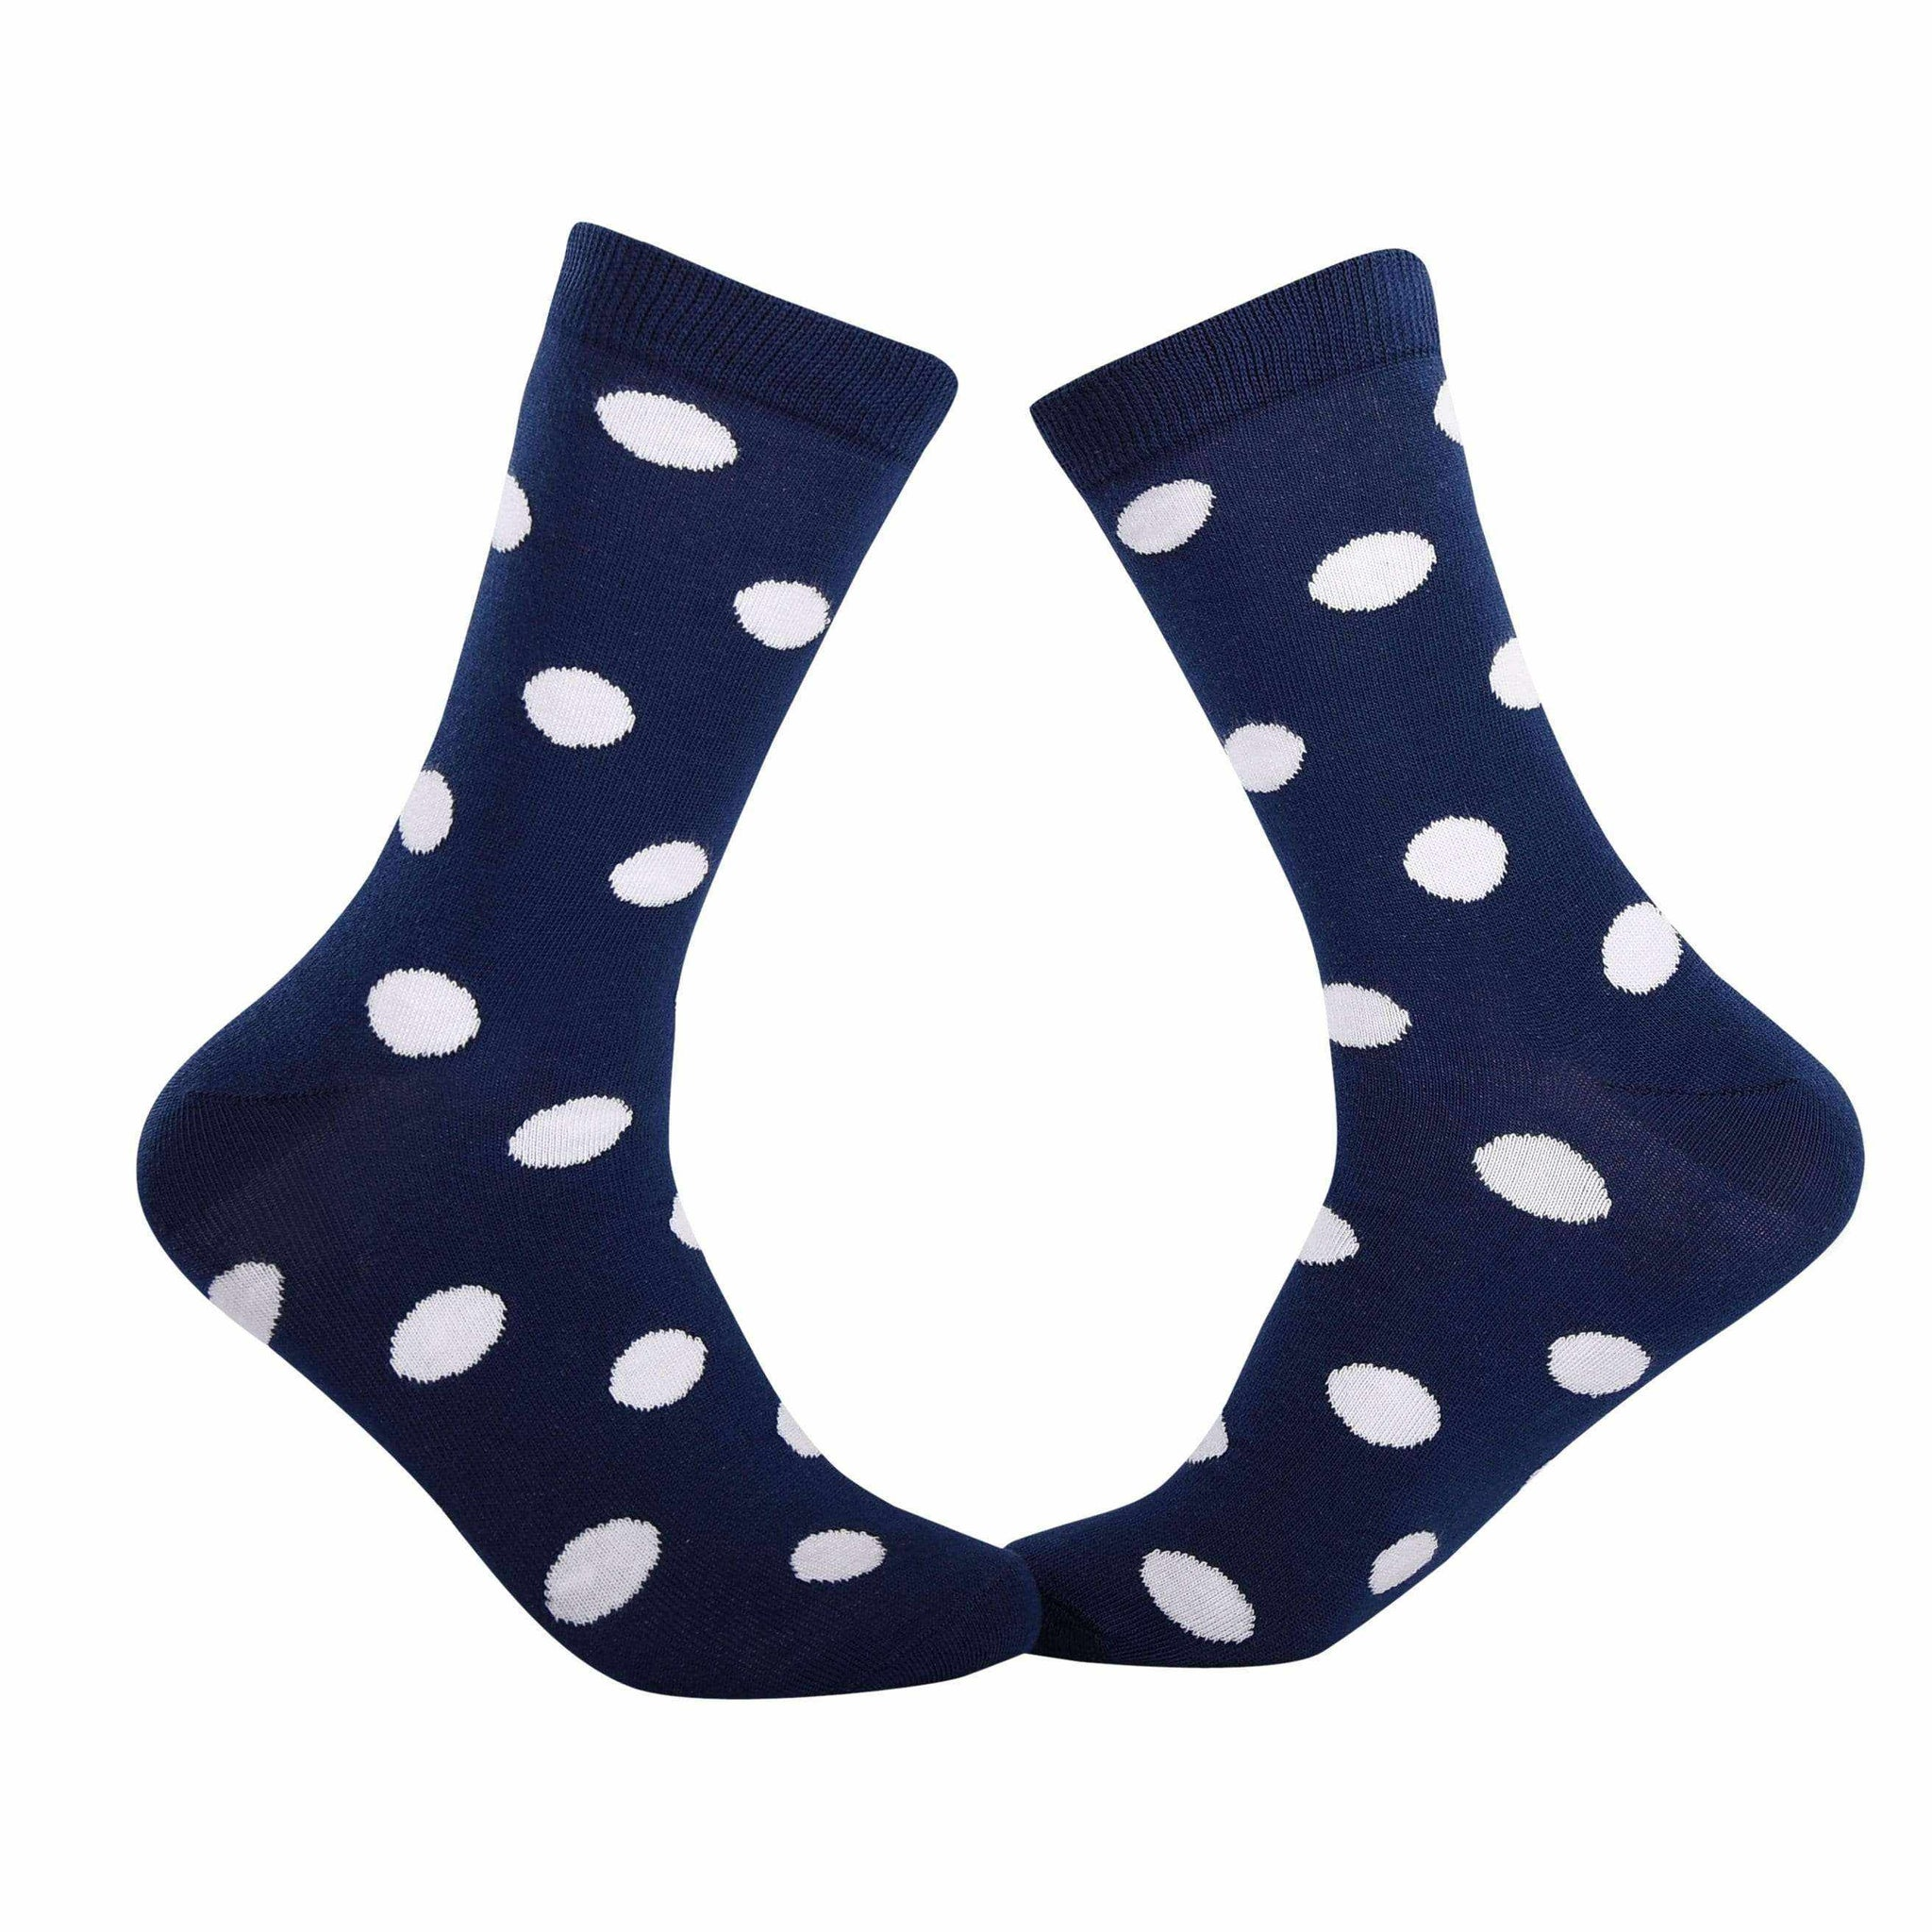 Big Polka Dots Crew Socks - Navy and White - Tale Of Socks